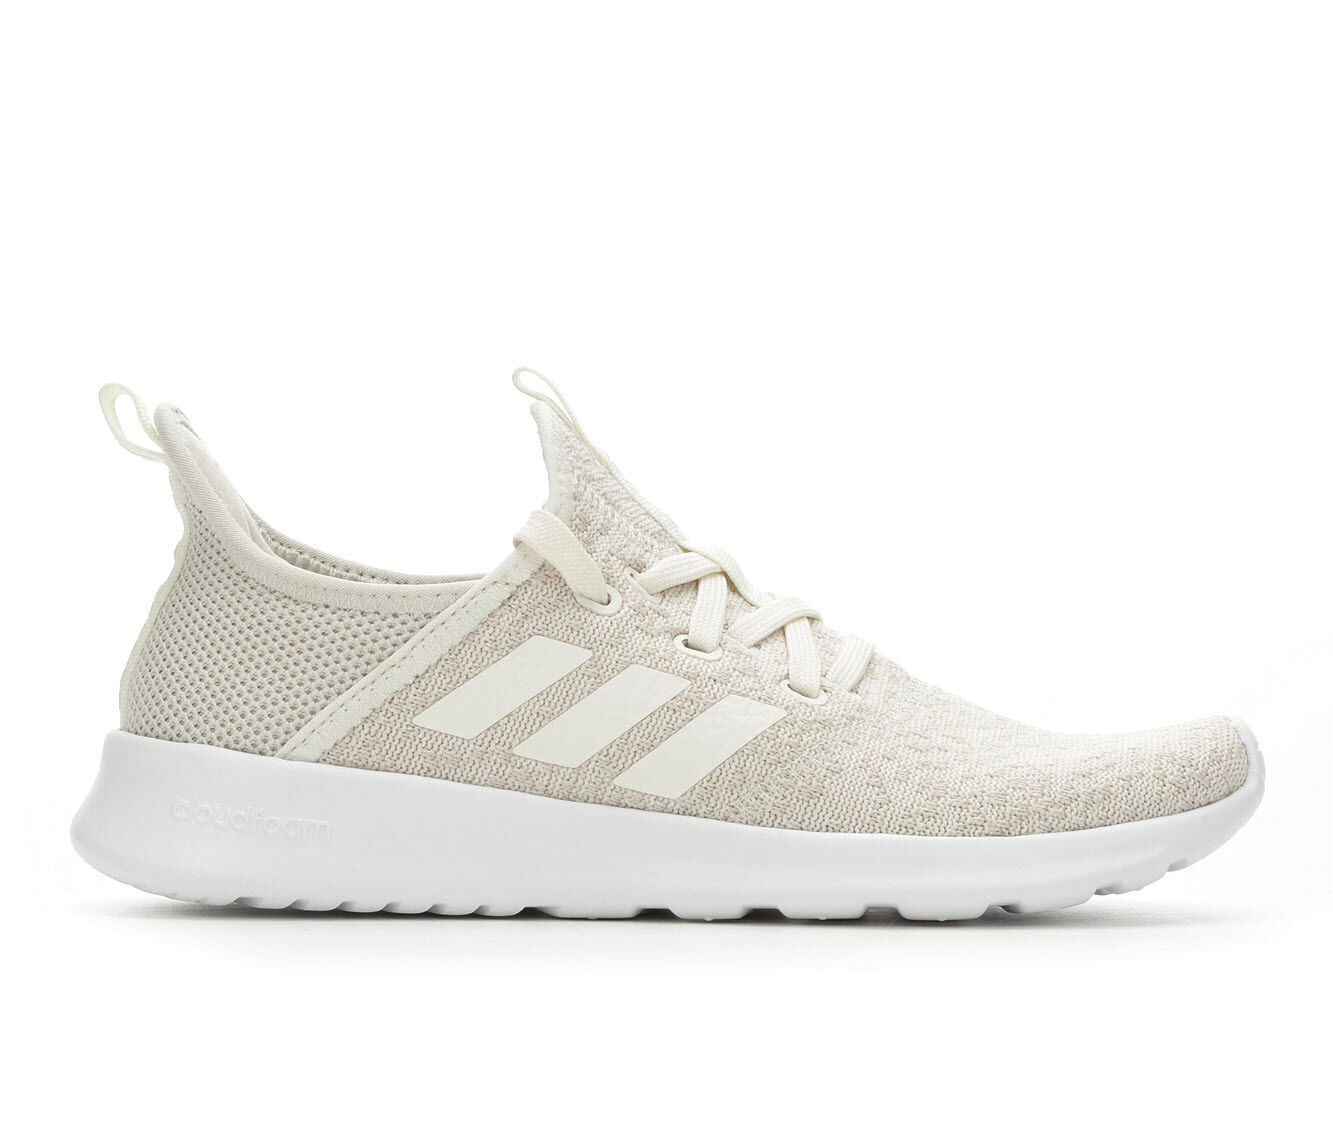 Women's Adidas Pure Sneakers White/Ice/Mint